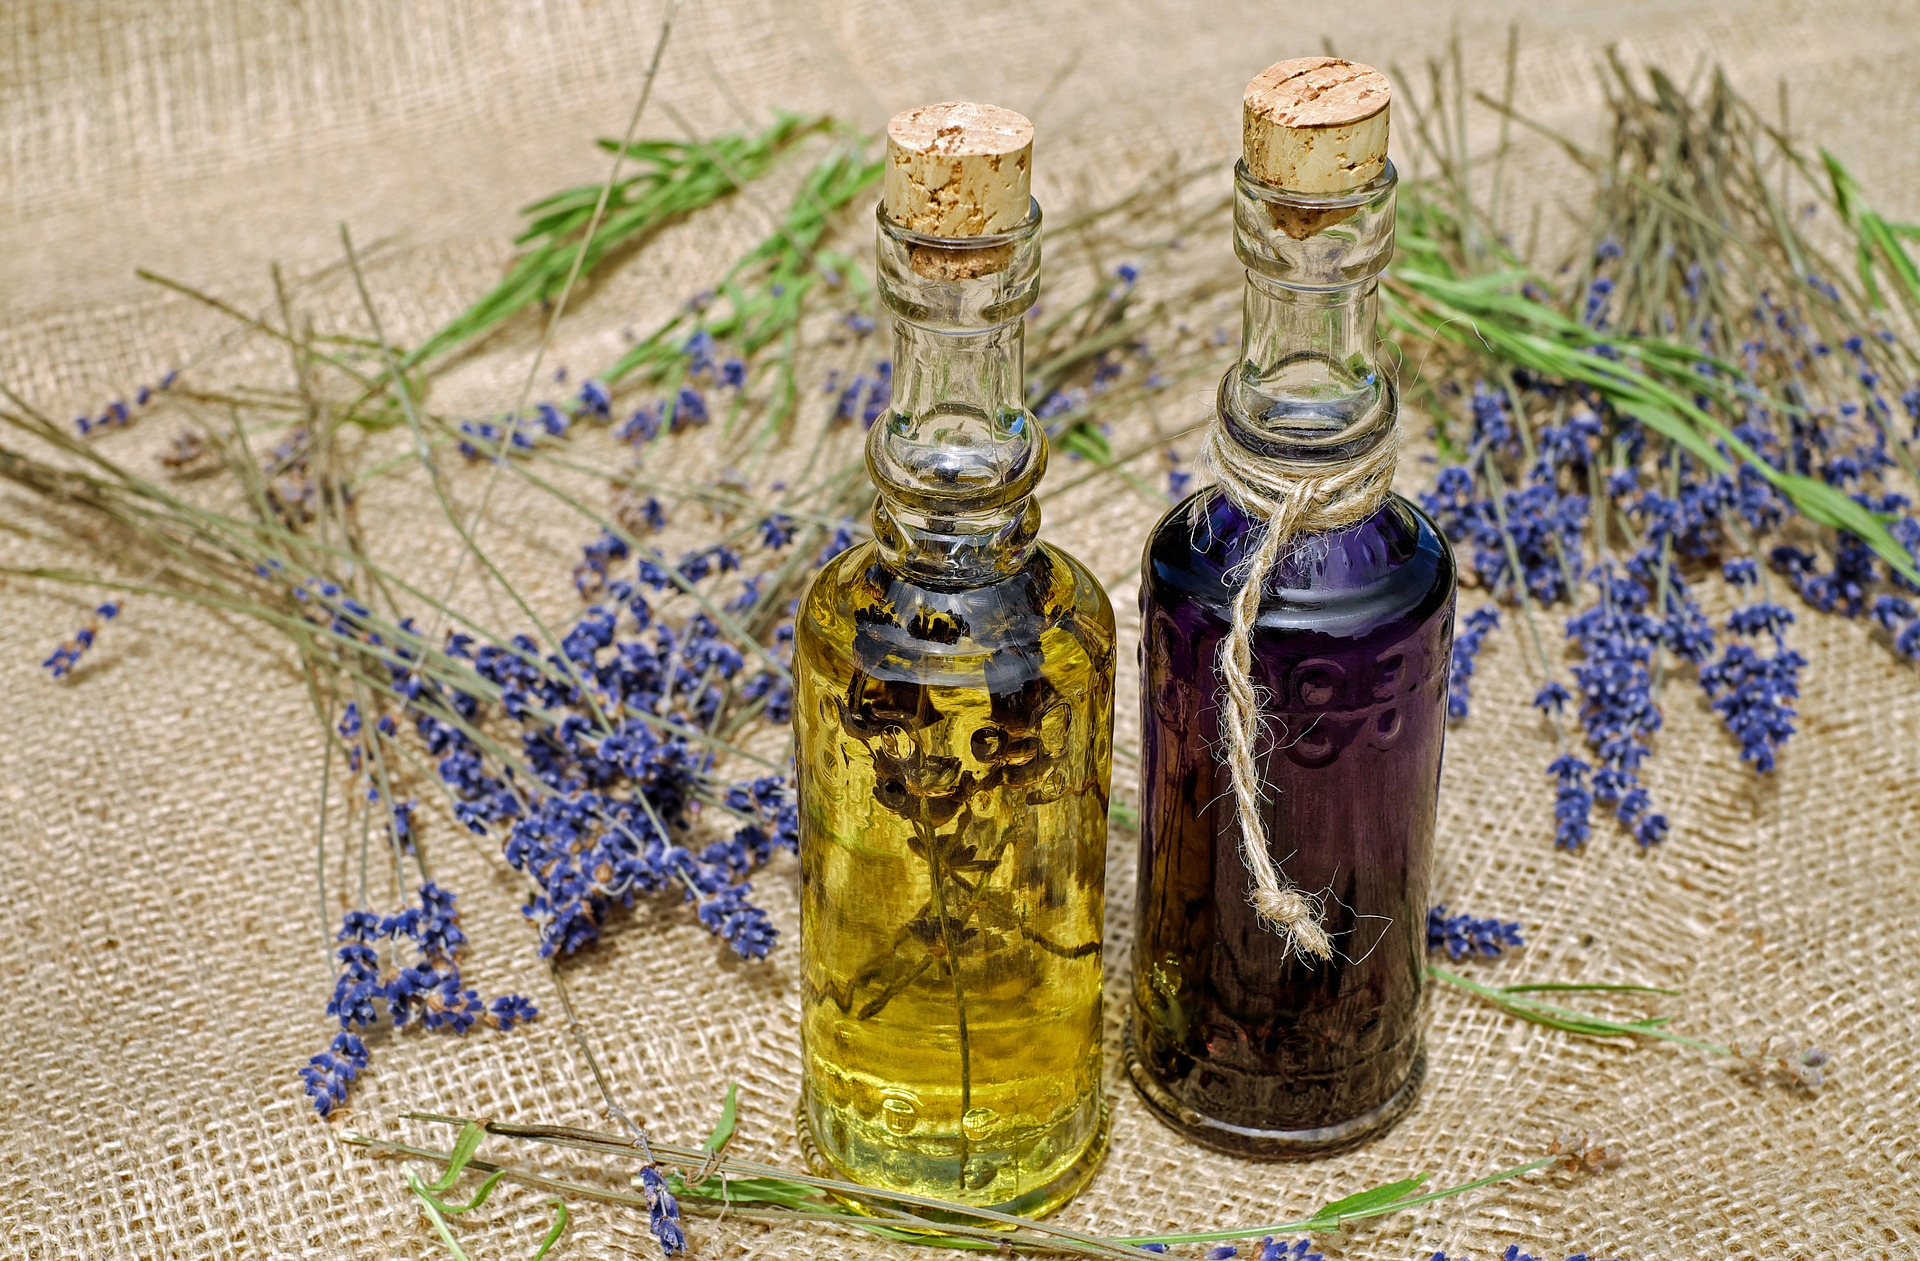 All about Natural Products